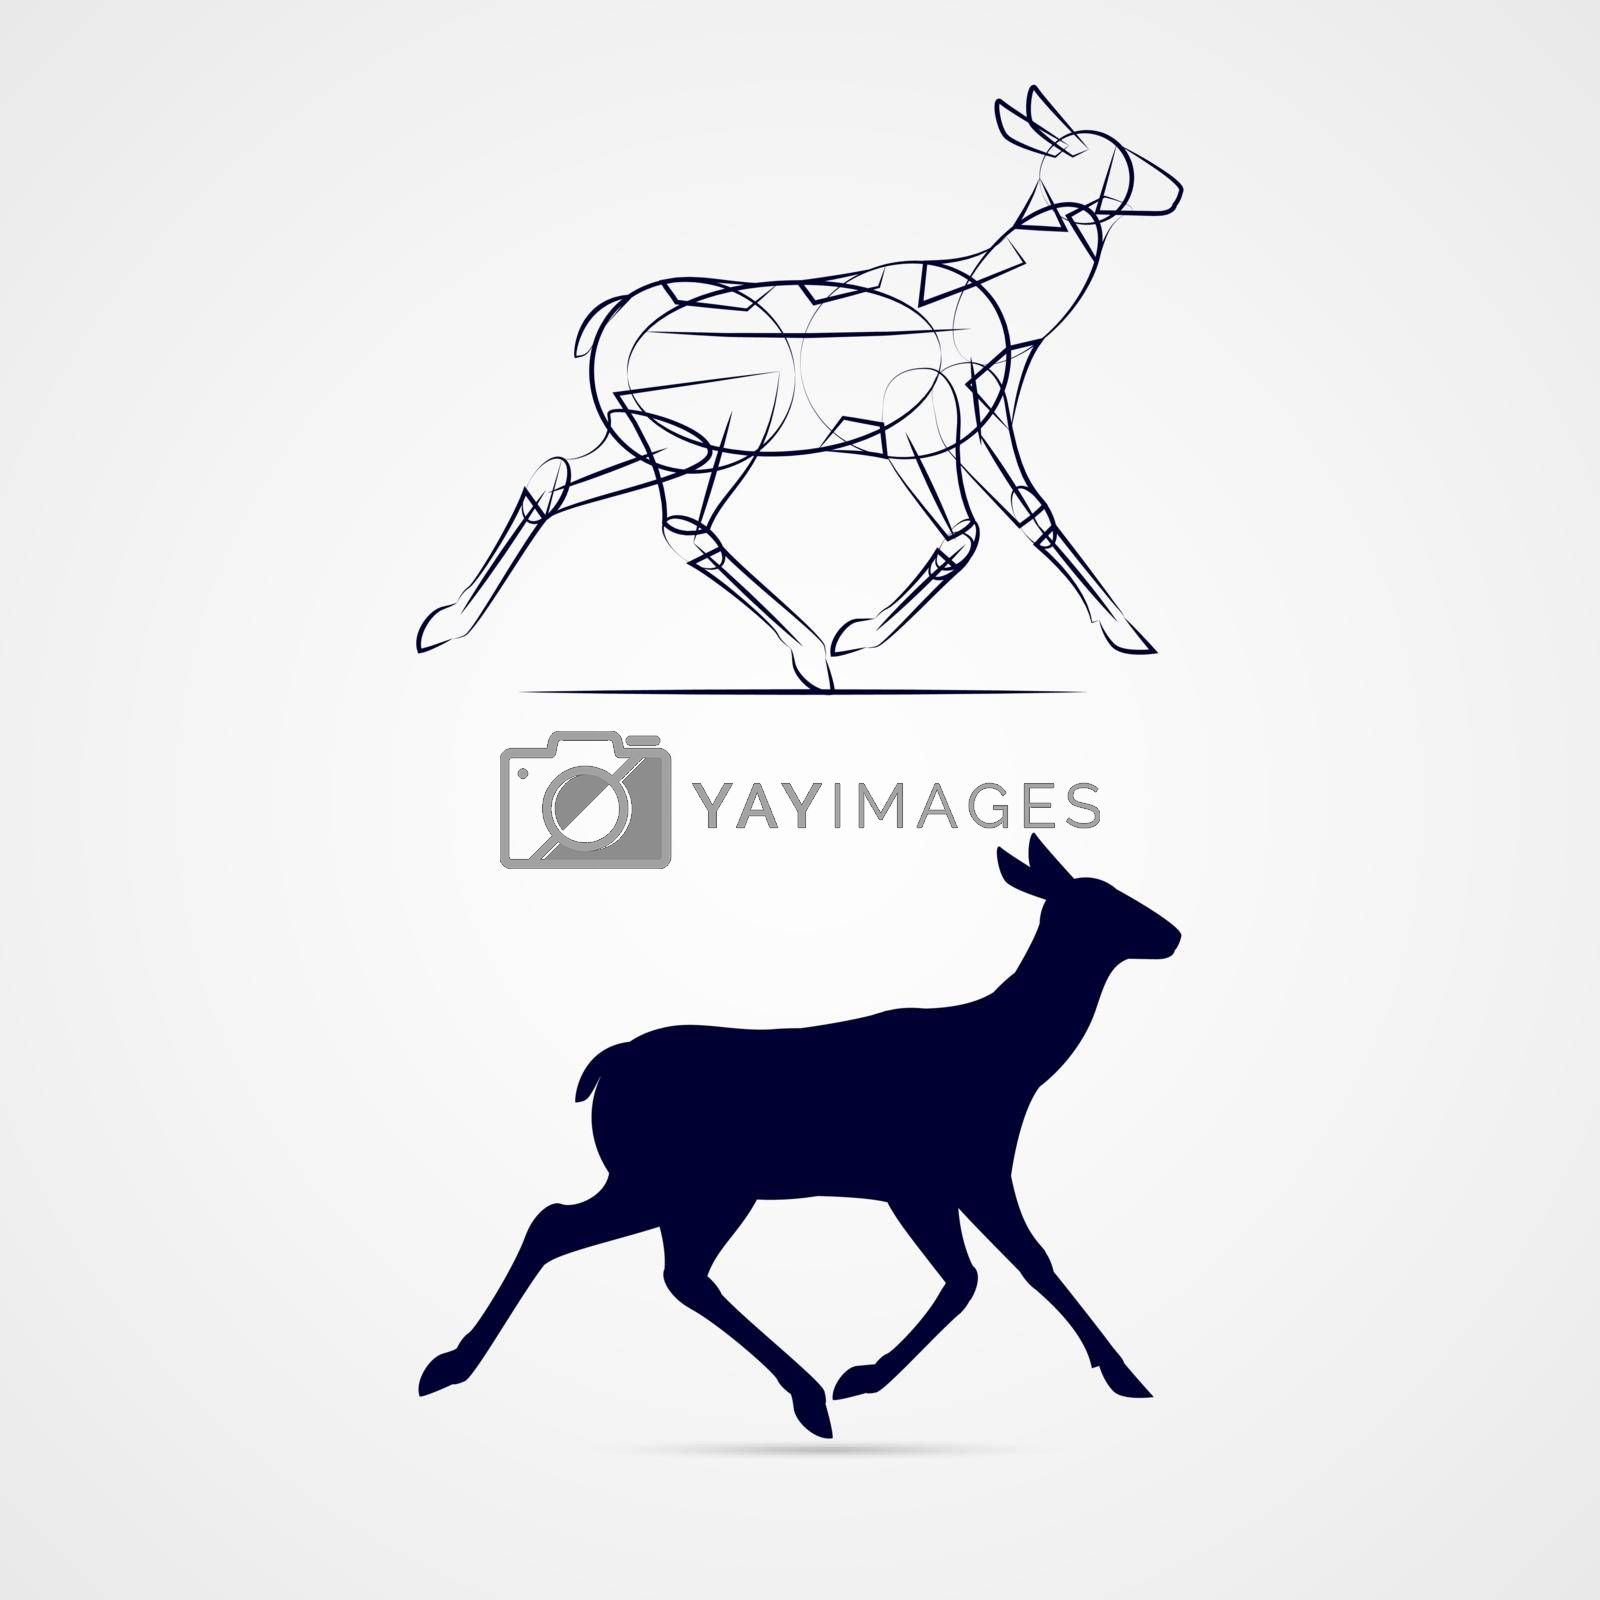 Illustration of Young Deer Silhouette with Sketch Running on Gray Background